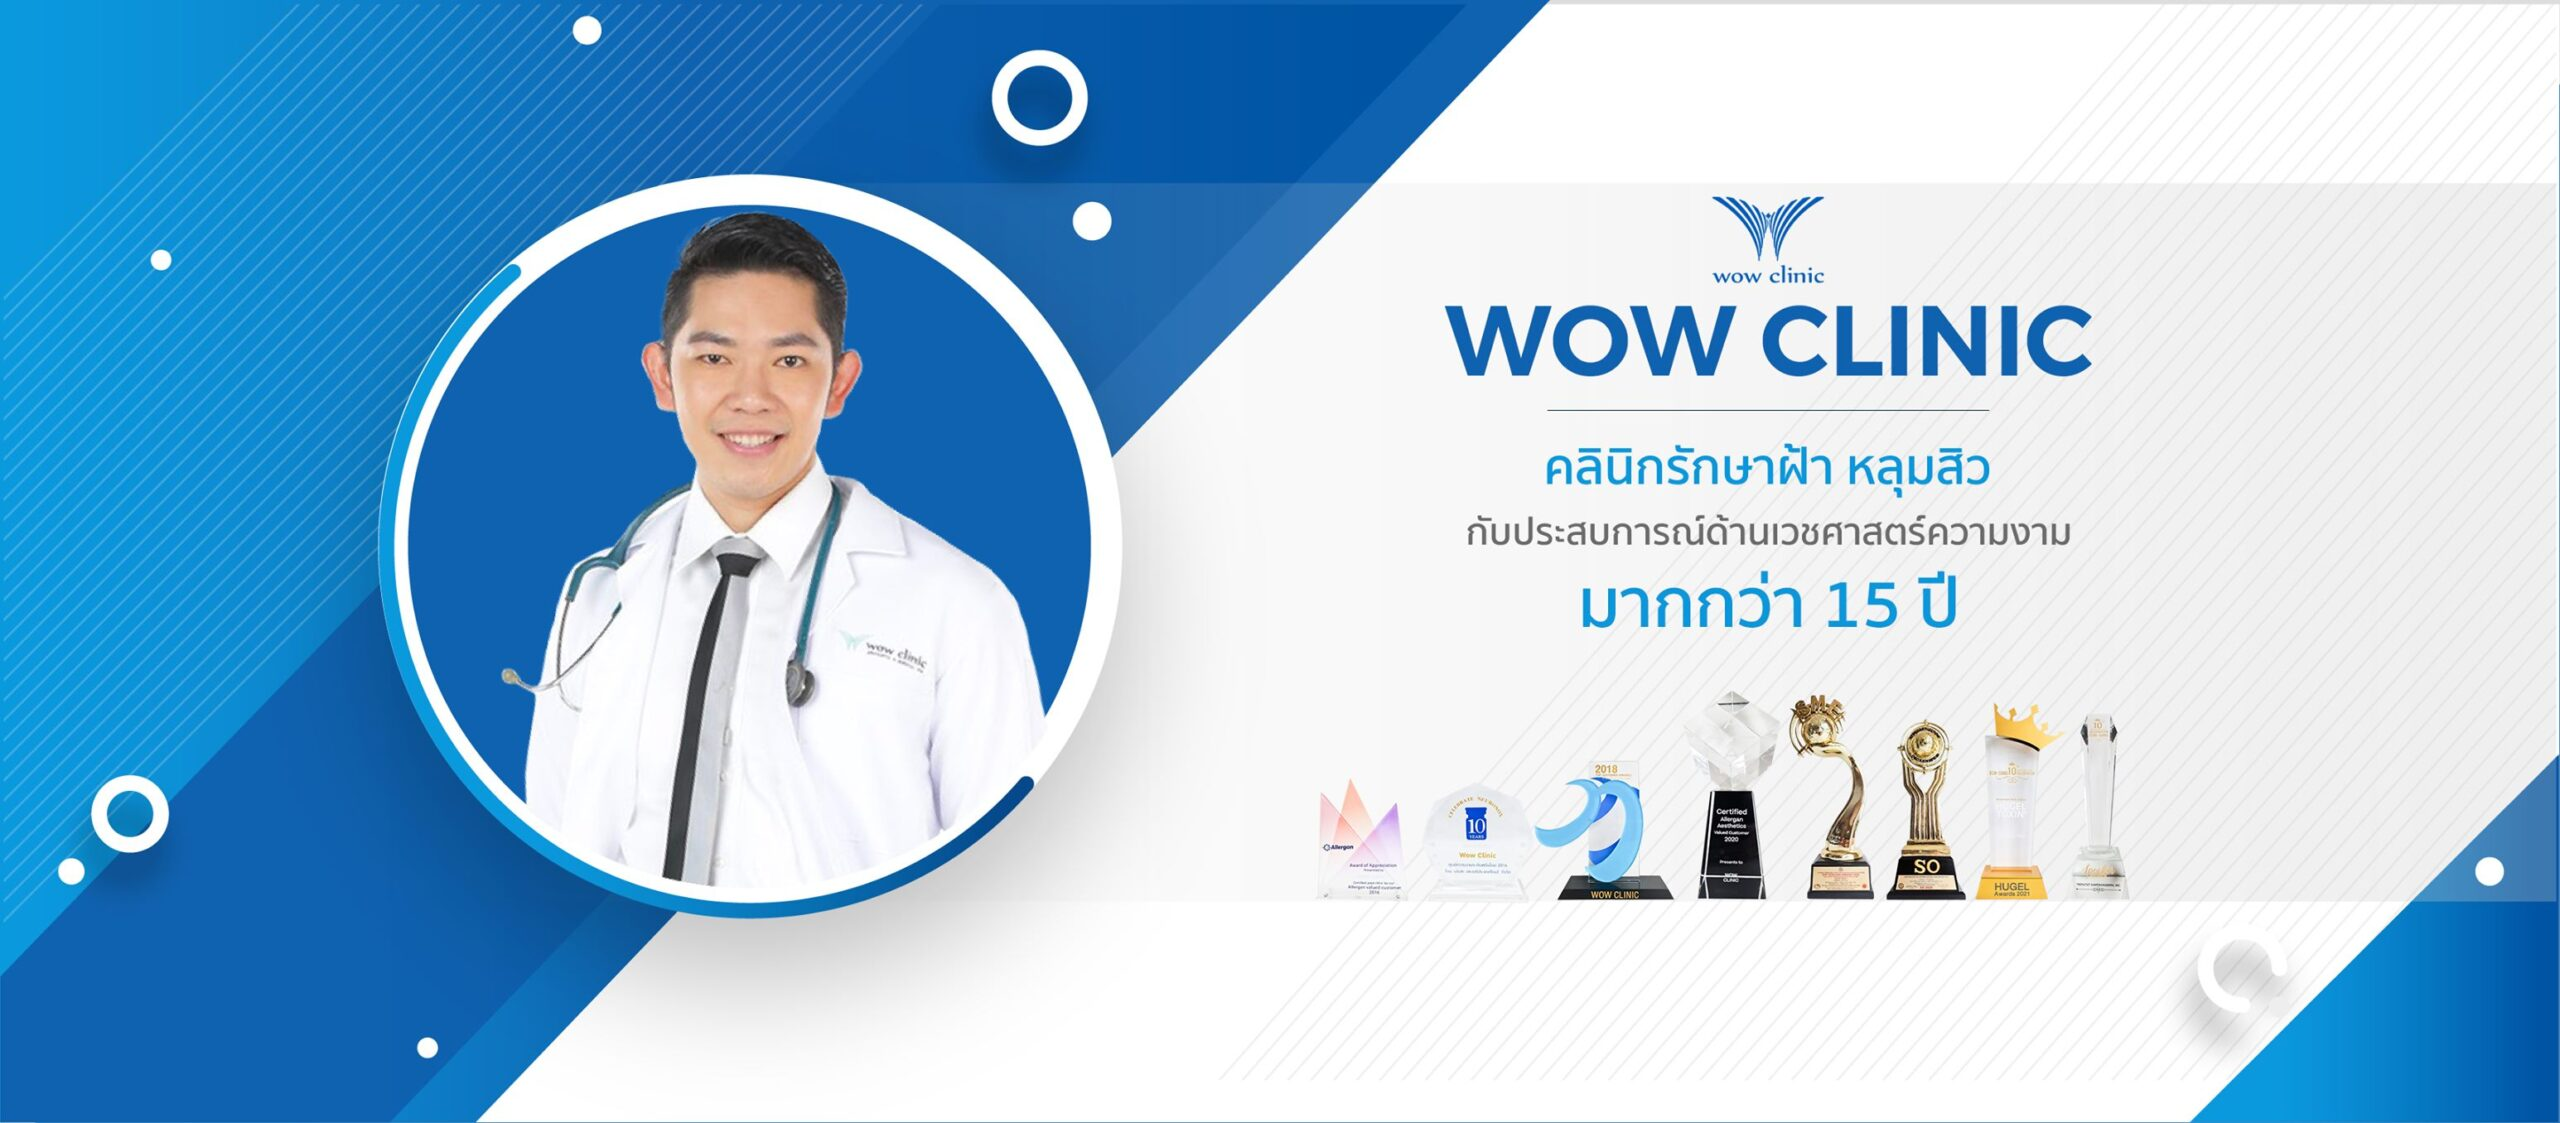 wow clinic Dr.WOW